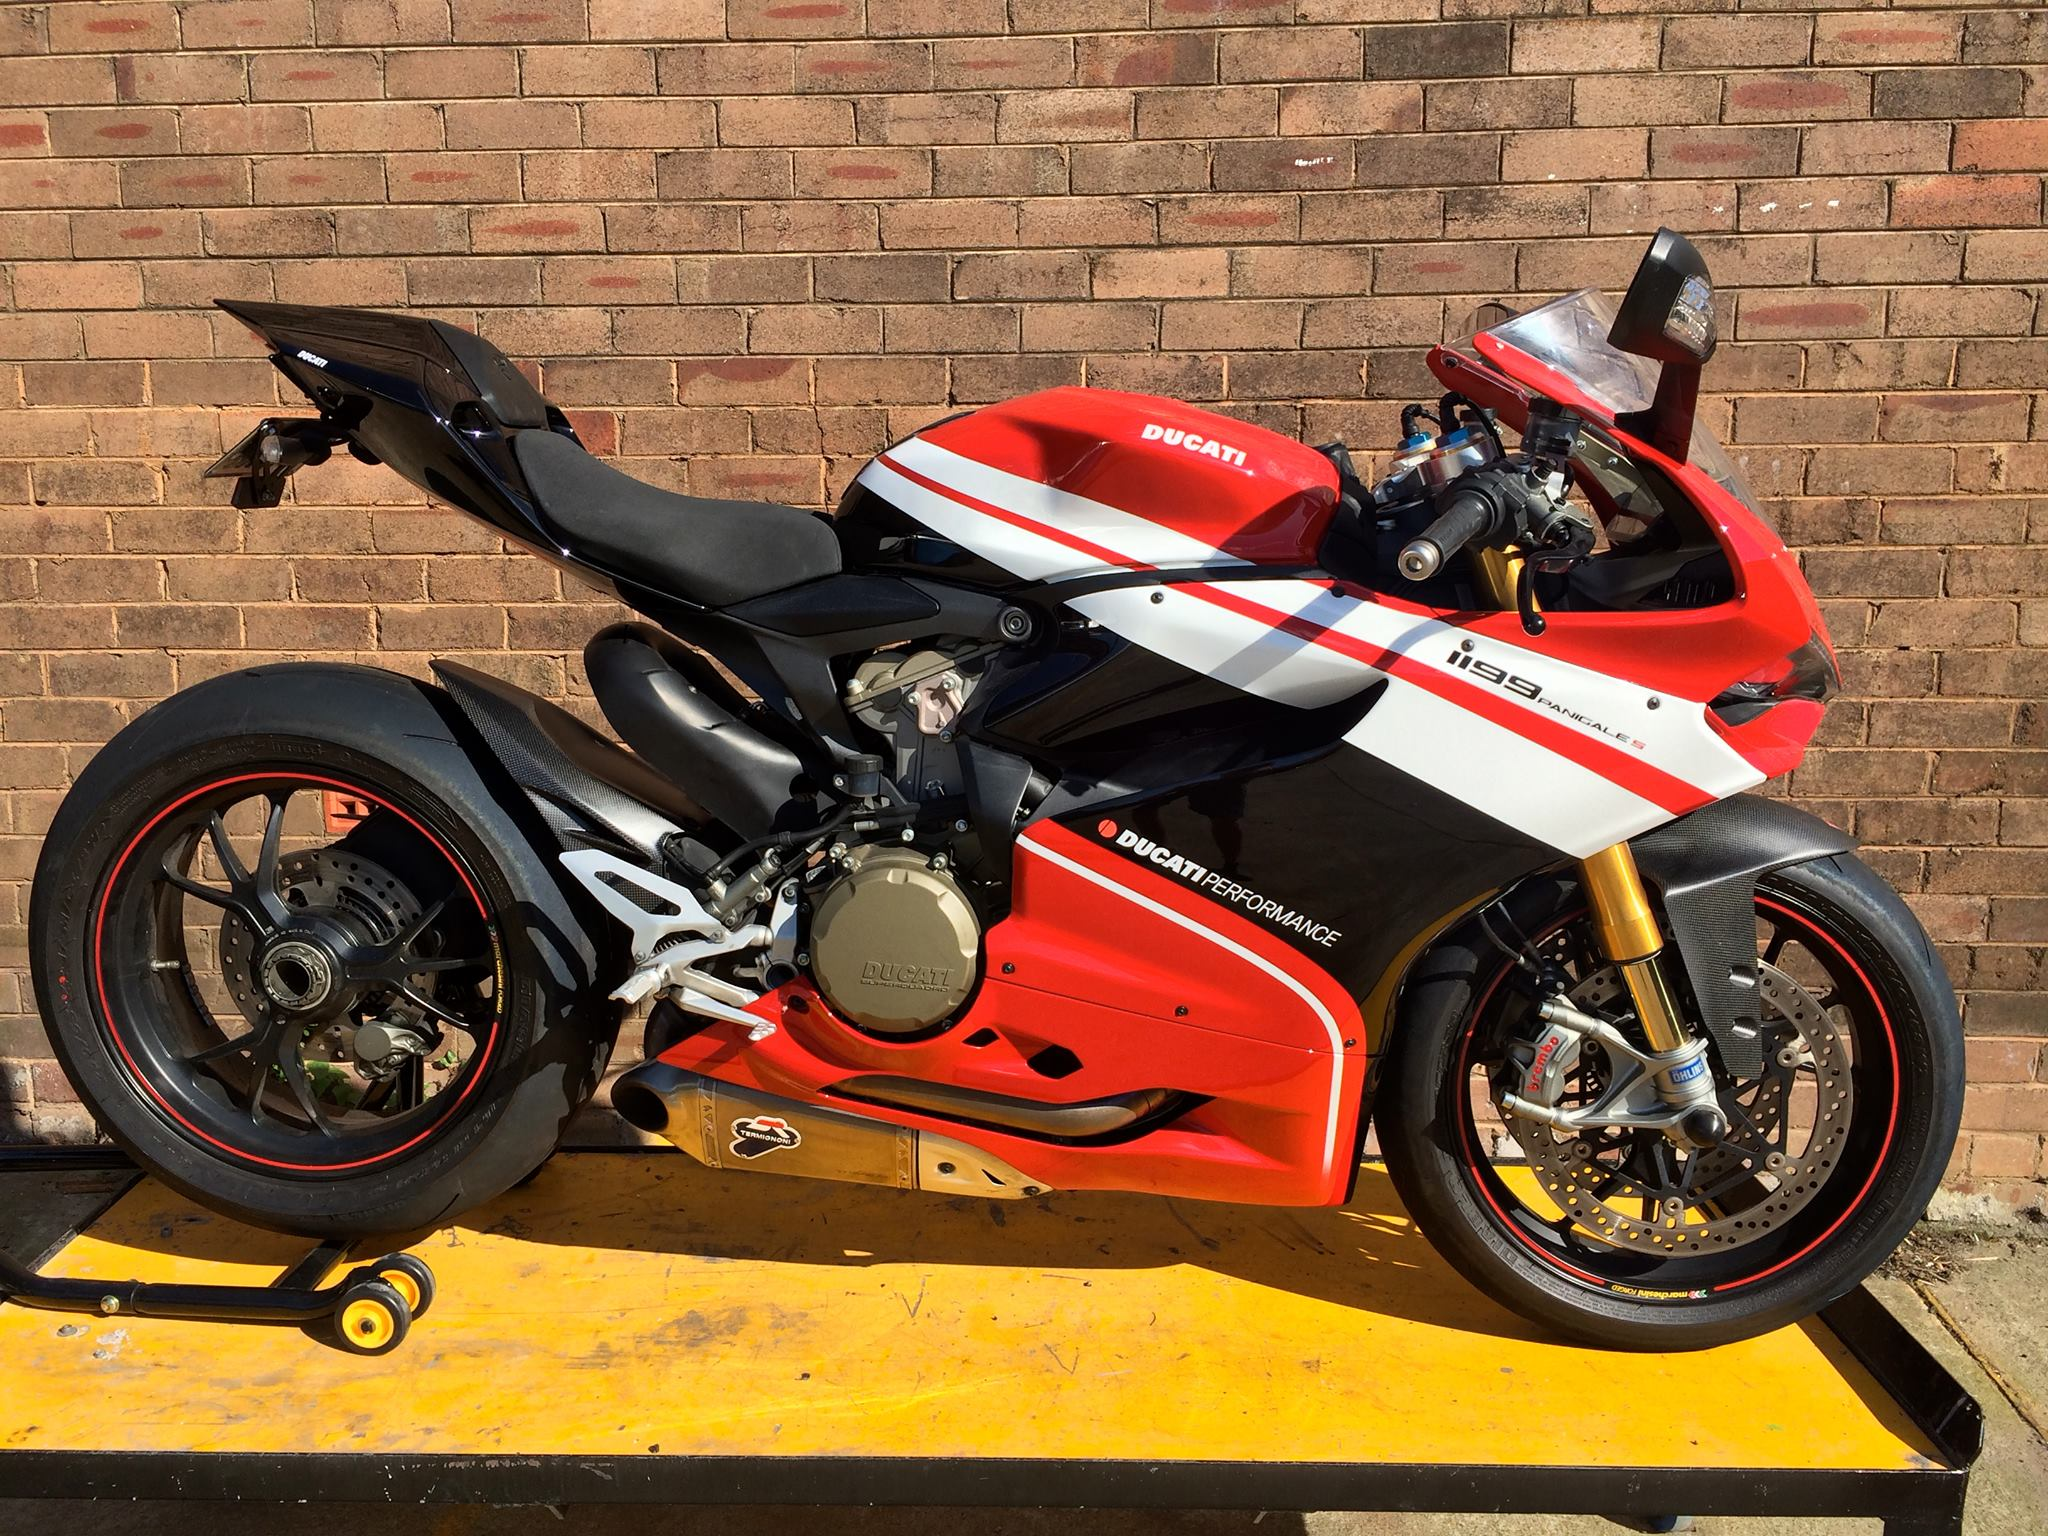 Cutting Edge Paint Shop - Ducati 1199S